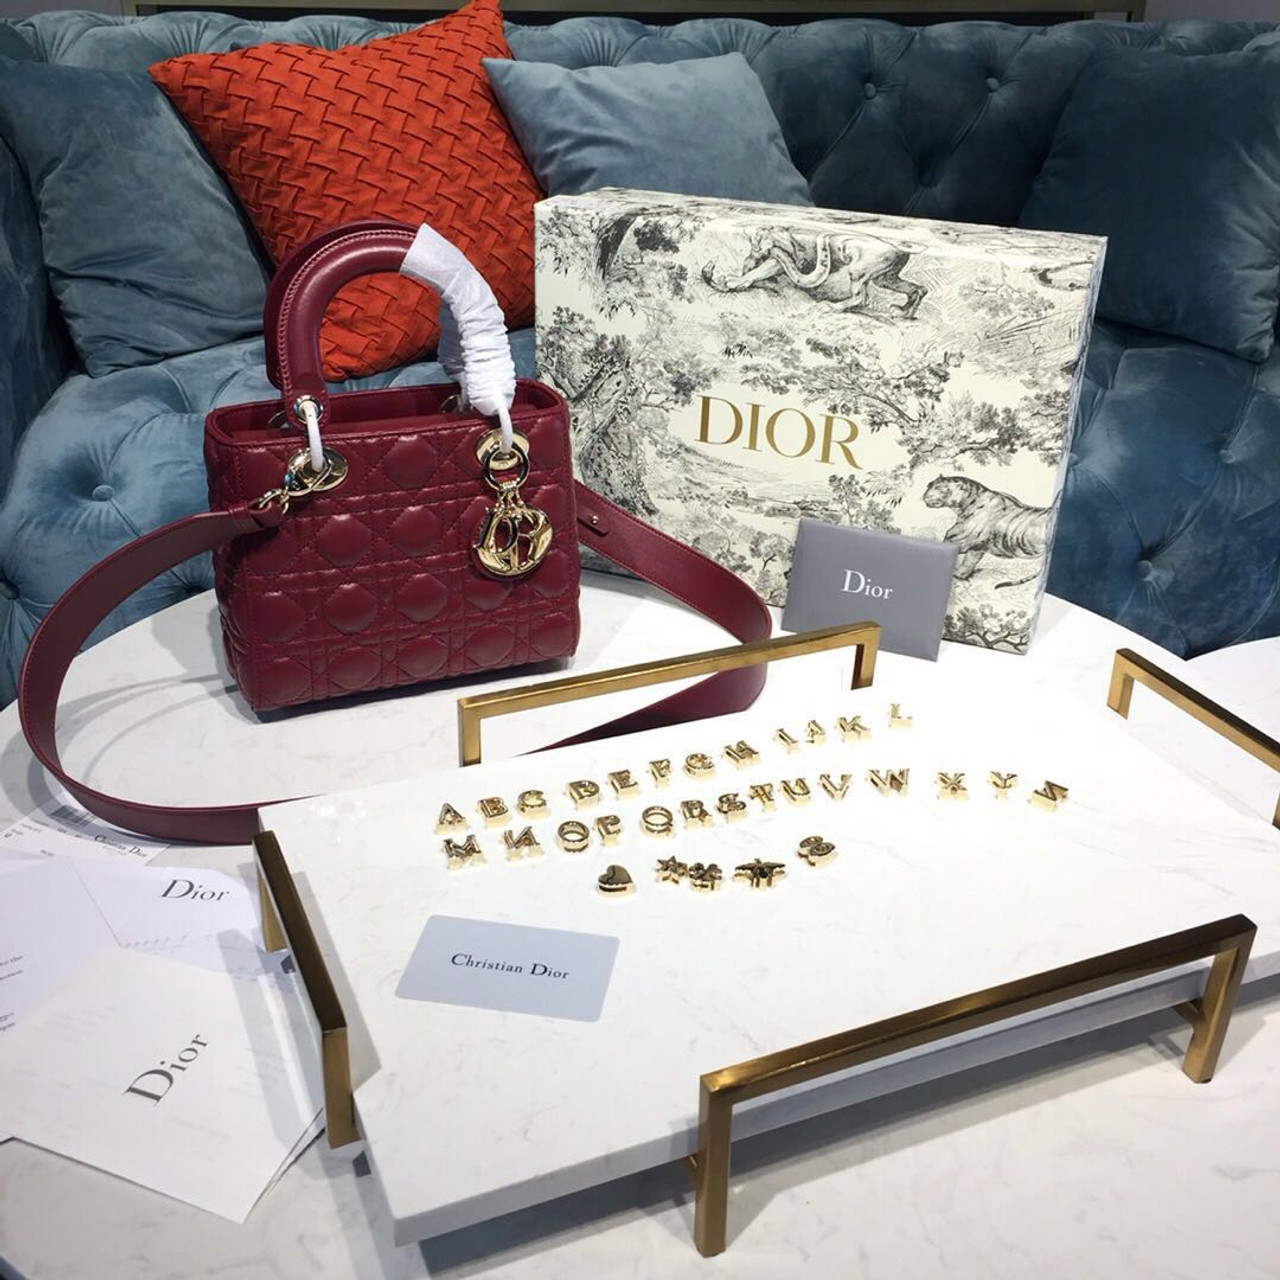 6041170685 Christian Dior My ABCDior Bag 20cm Gold Hardware Lambskin Leather  Spring/Summer 2019 Collection, Burgundy